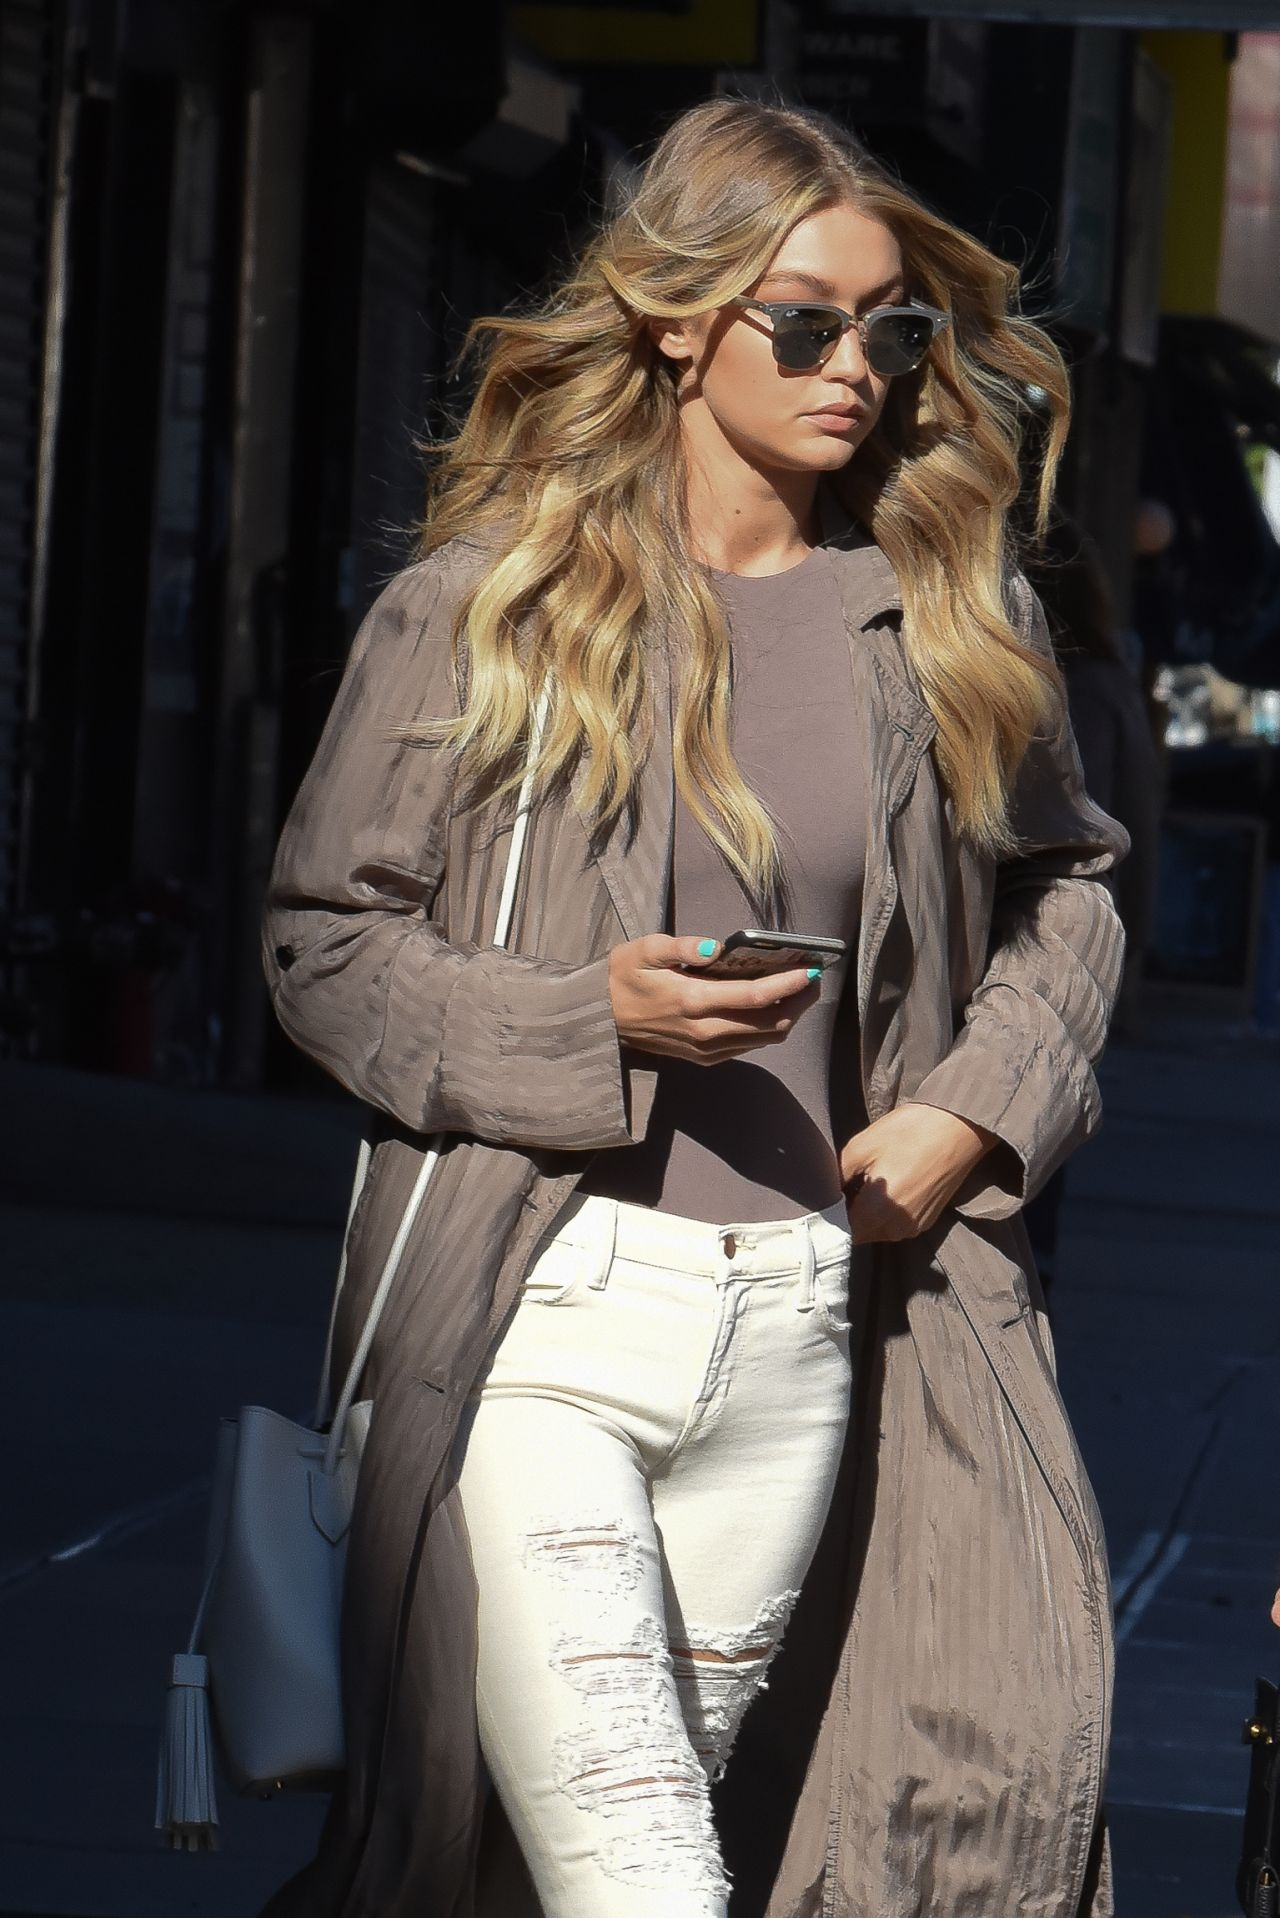 gigi hadid casual style out in new york city november 2015